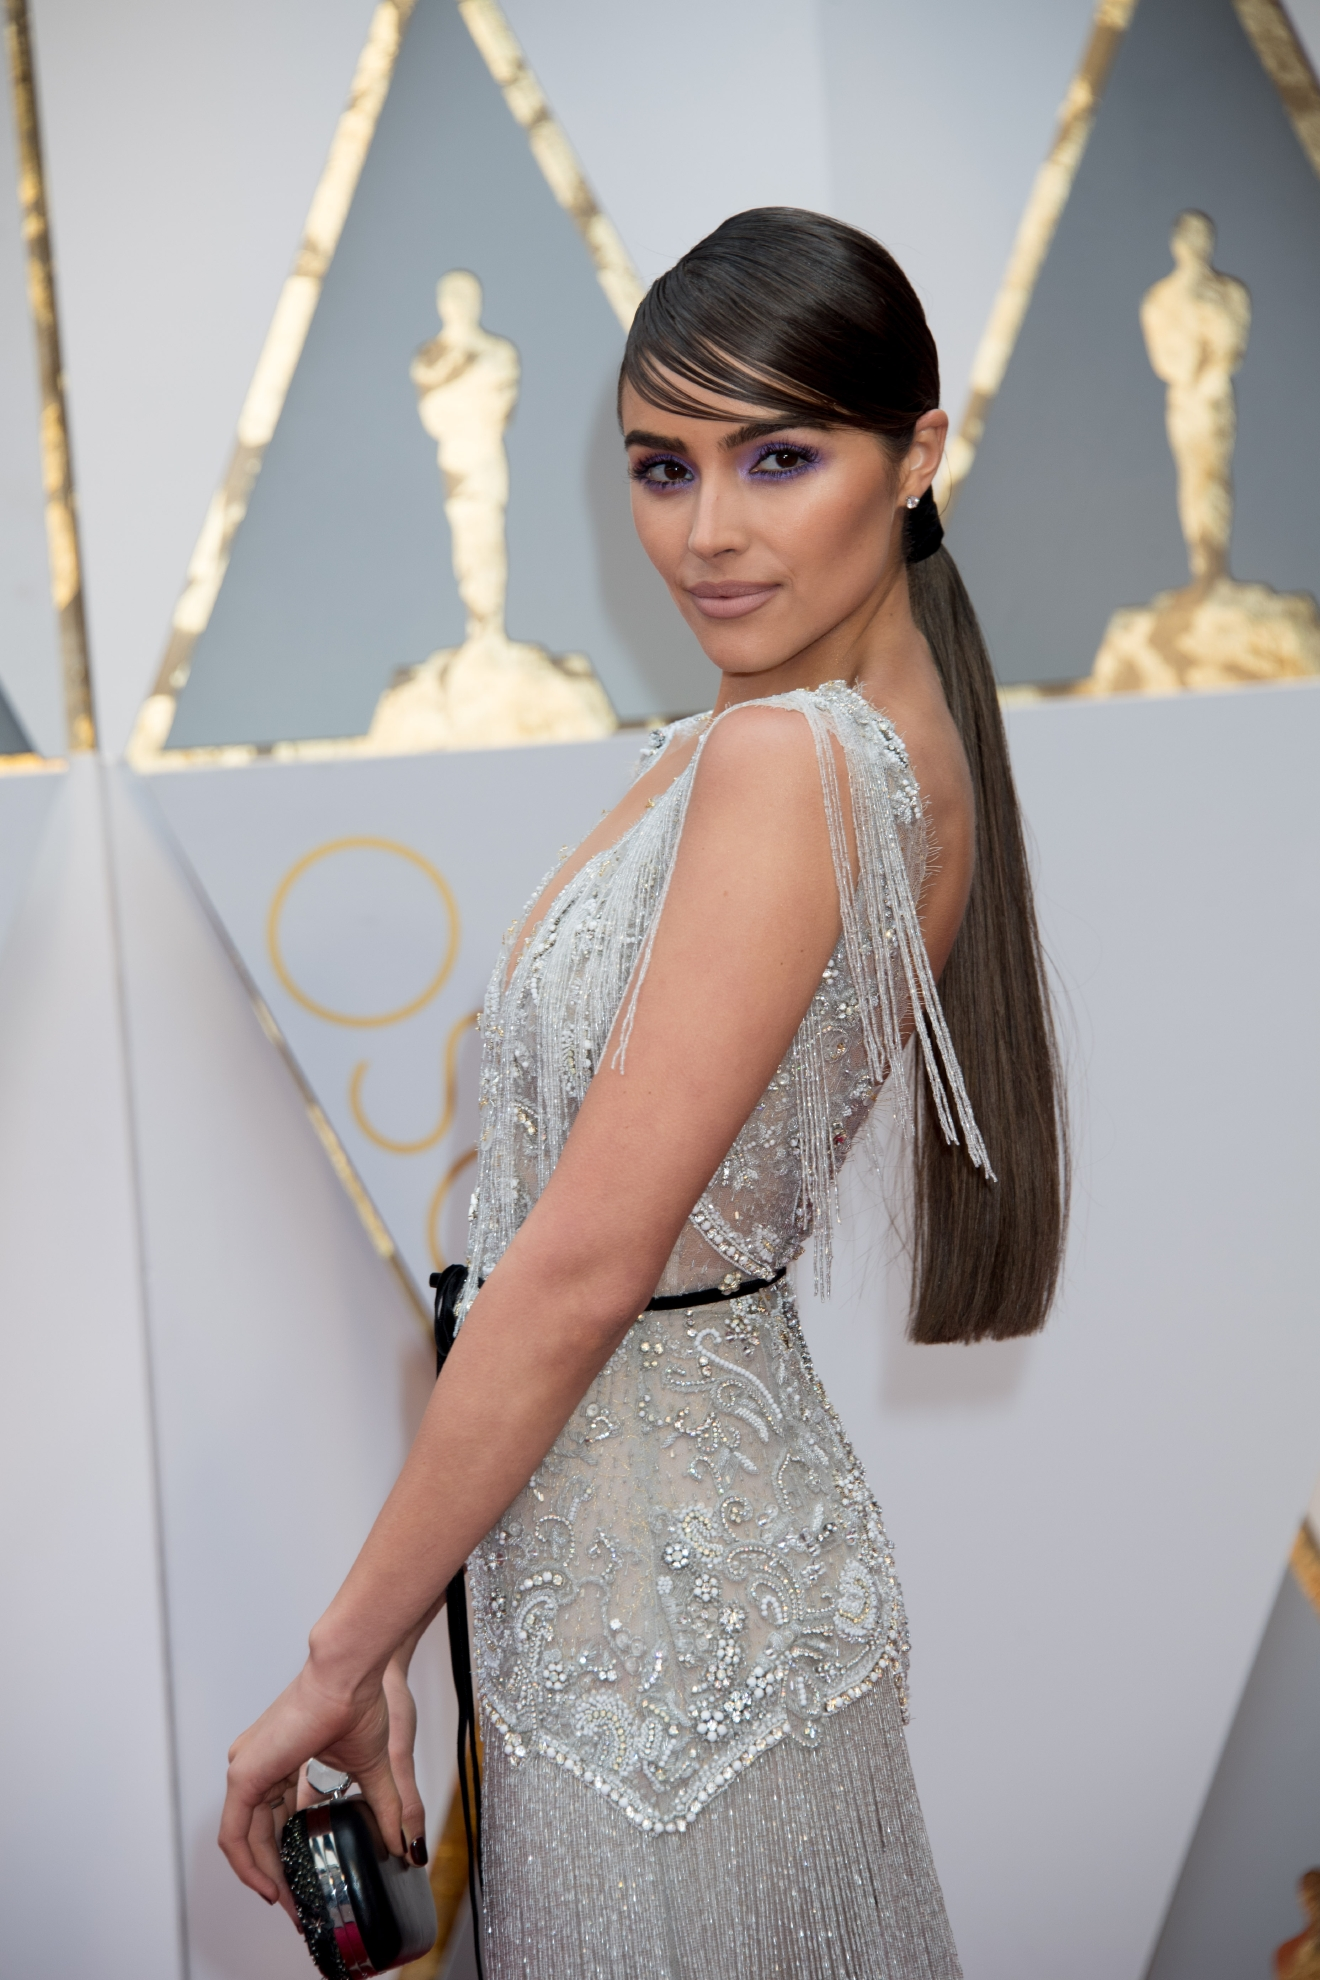 Olivia Culpo arrives at The 89th Oscars® at the Dolby® Theatre in Hollywood, CA on Sunday, February 26, 2017. (Michael Yada / ©A.M.P.A.S.)